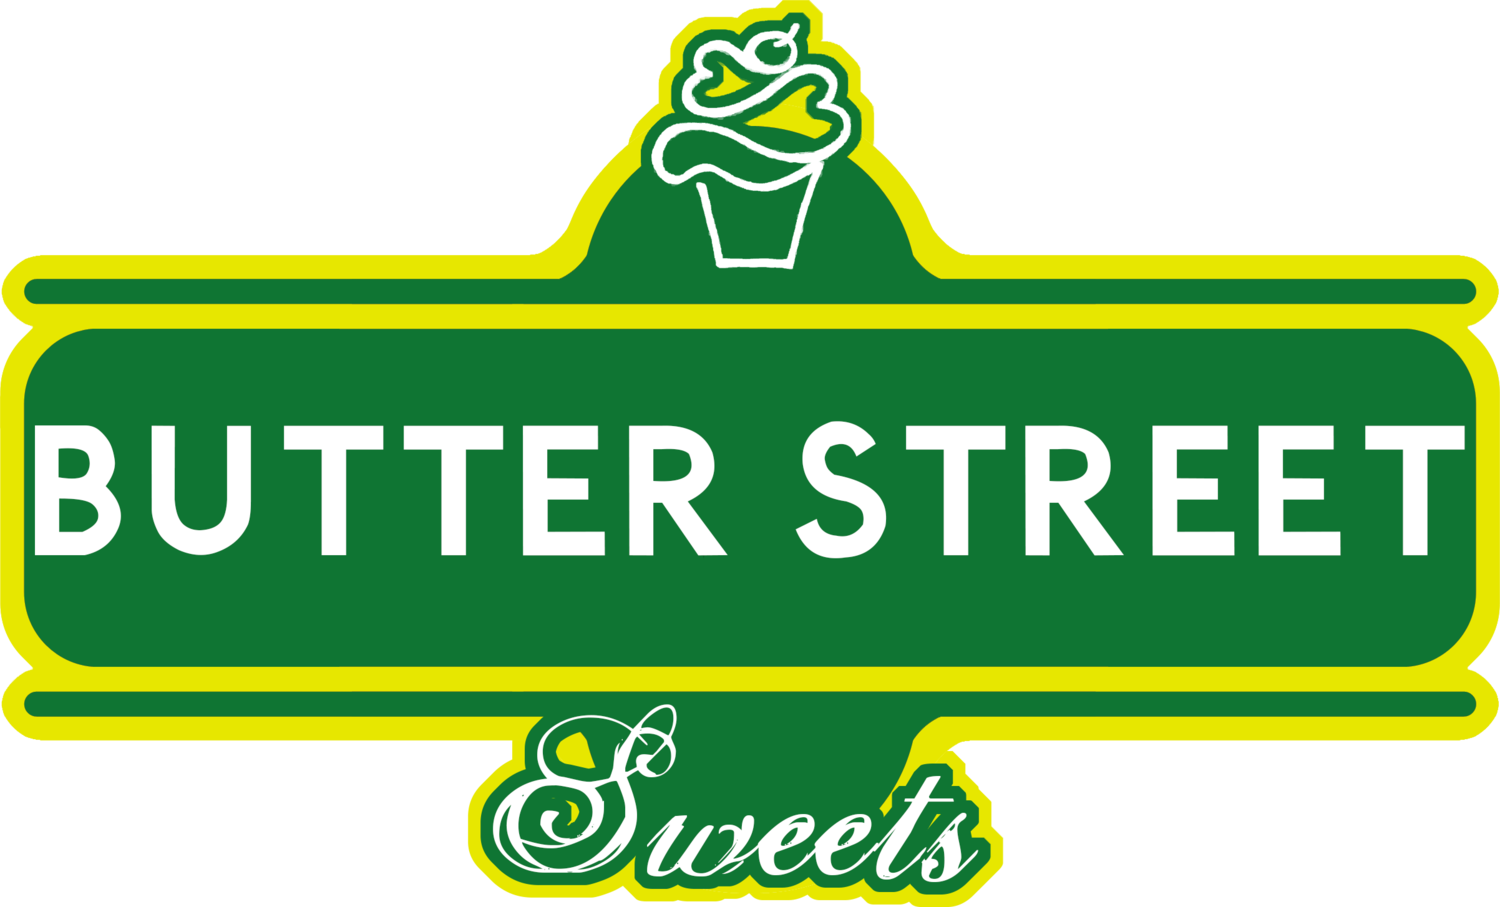 Butter Street Sweets